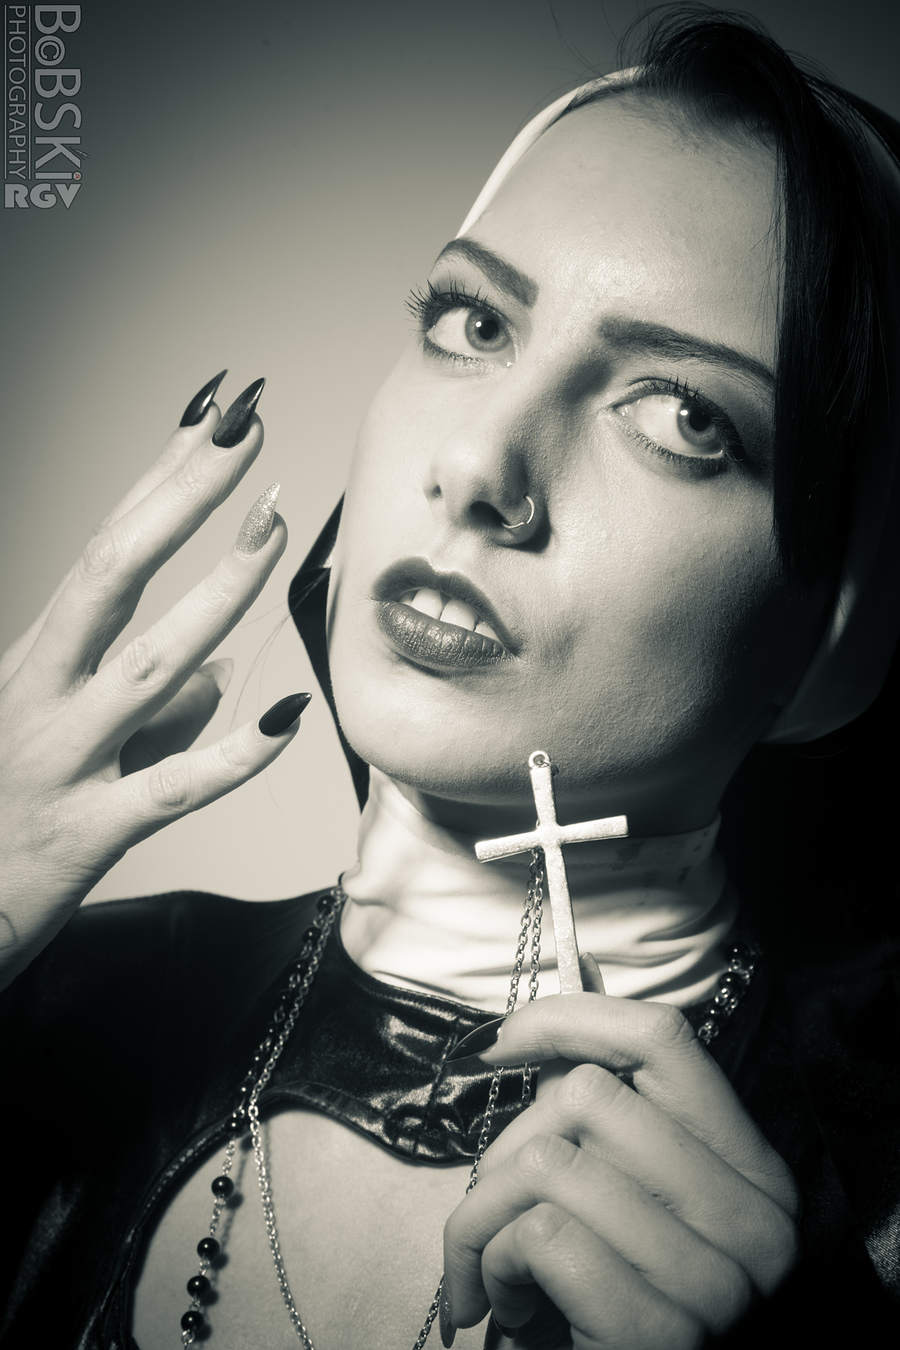 The Cross won't save me! / Photography by BobskiRGV, Post processing by BobskiRGV / Uploaded 7th October 2014 @ 12:41 AM